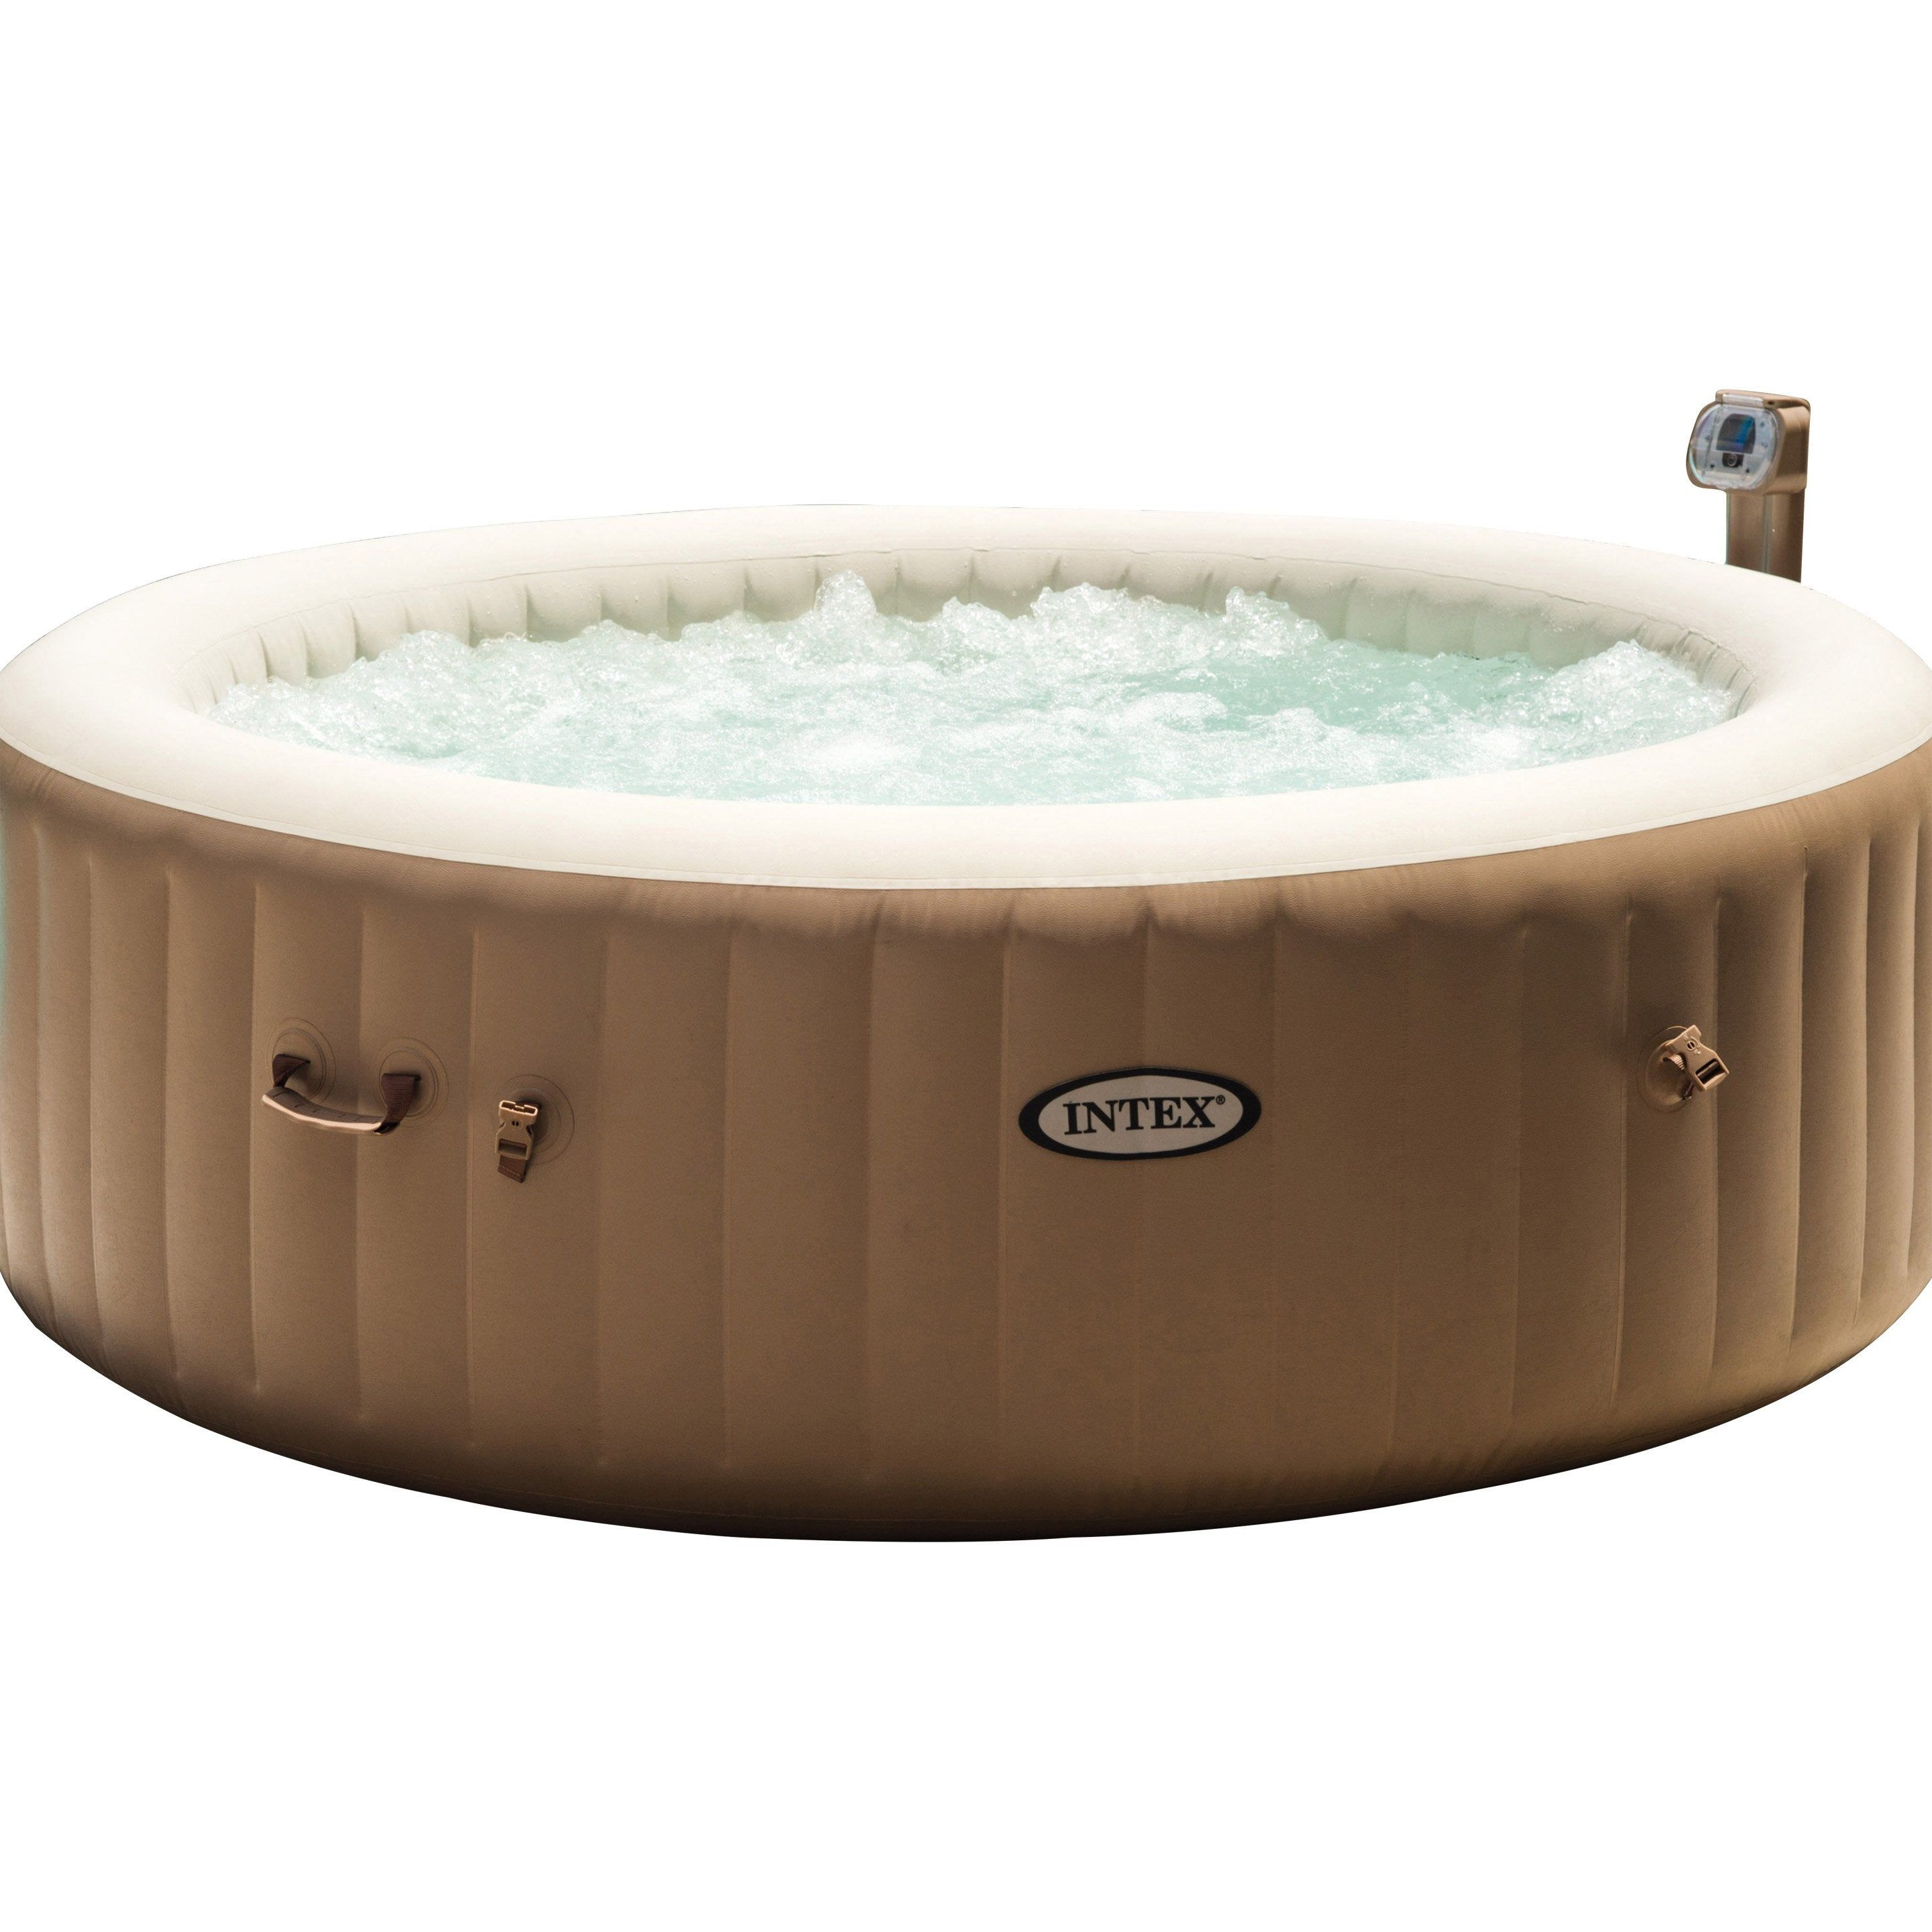 Spa Gonflable Intex Pure Spa Bulles Rond 6 Places Assises Spa Gonflable Spa Gonflable Intex Gonflable